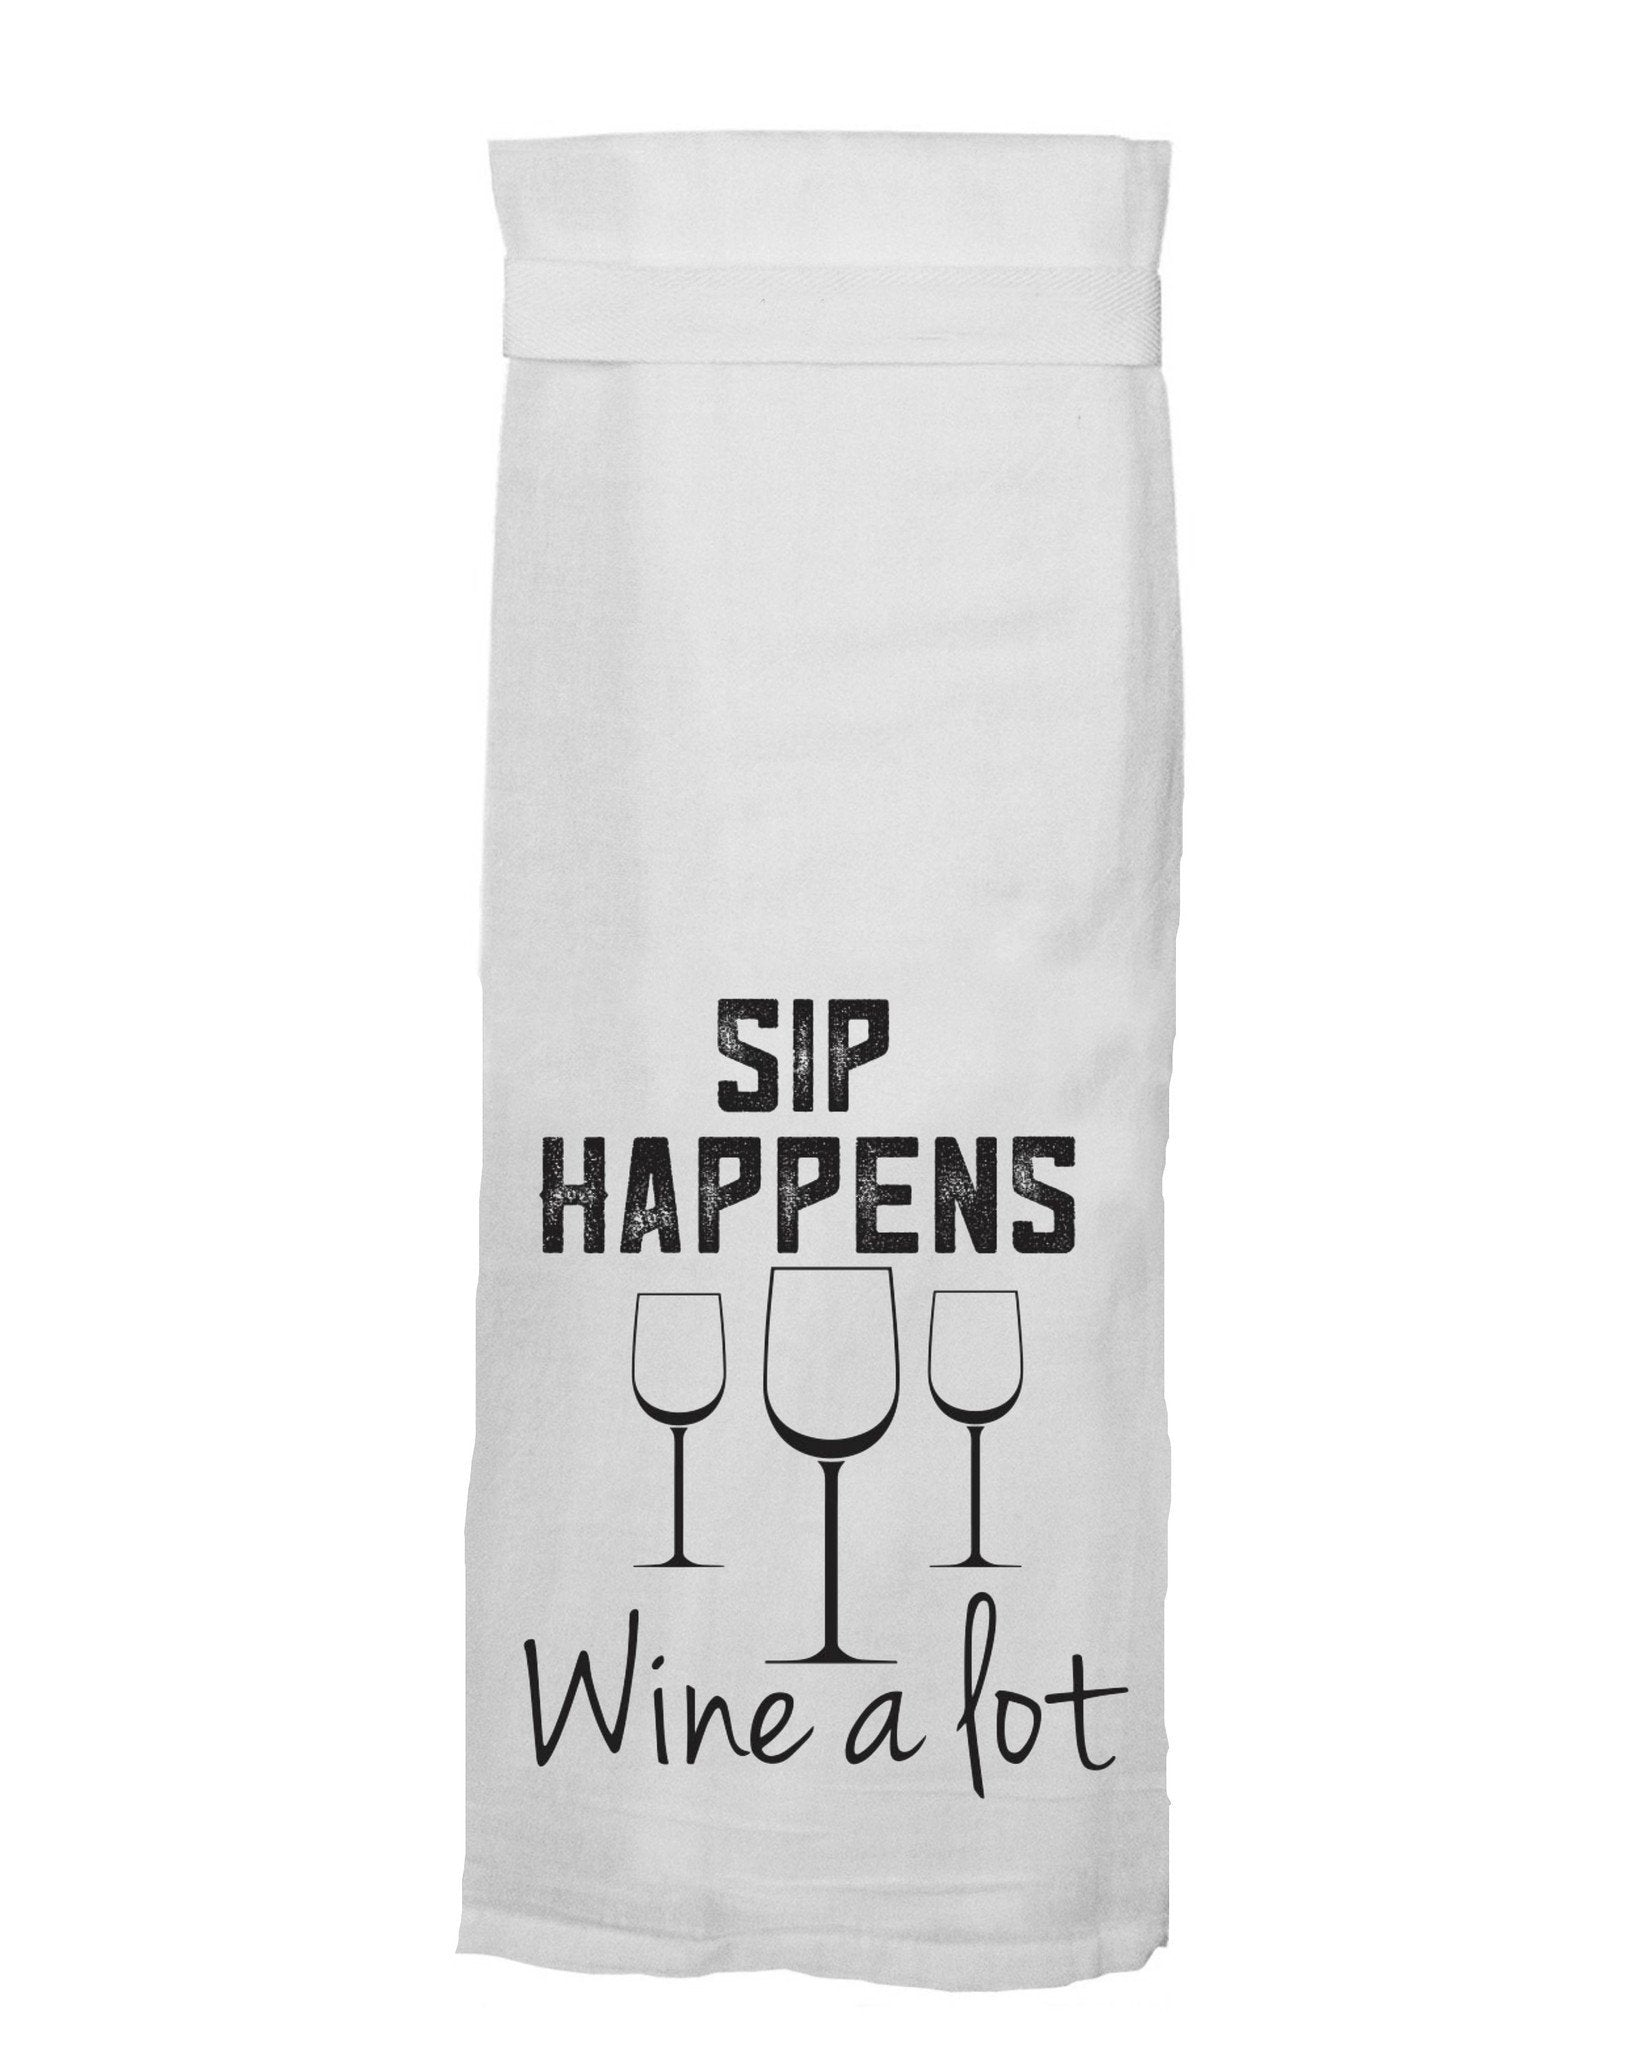 Buy Sip Happens Flour Sack Tea Towel from Walking Pants Curiosities, the Most un-General Gift Store in Downtown Memphis, Tennessee!